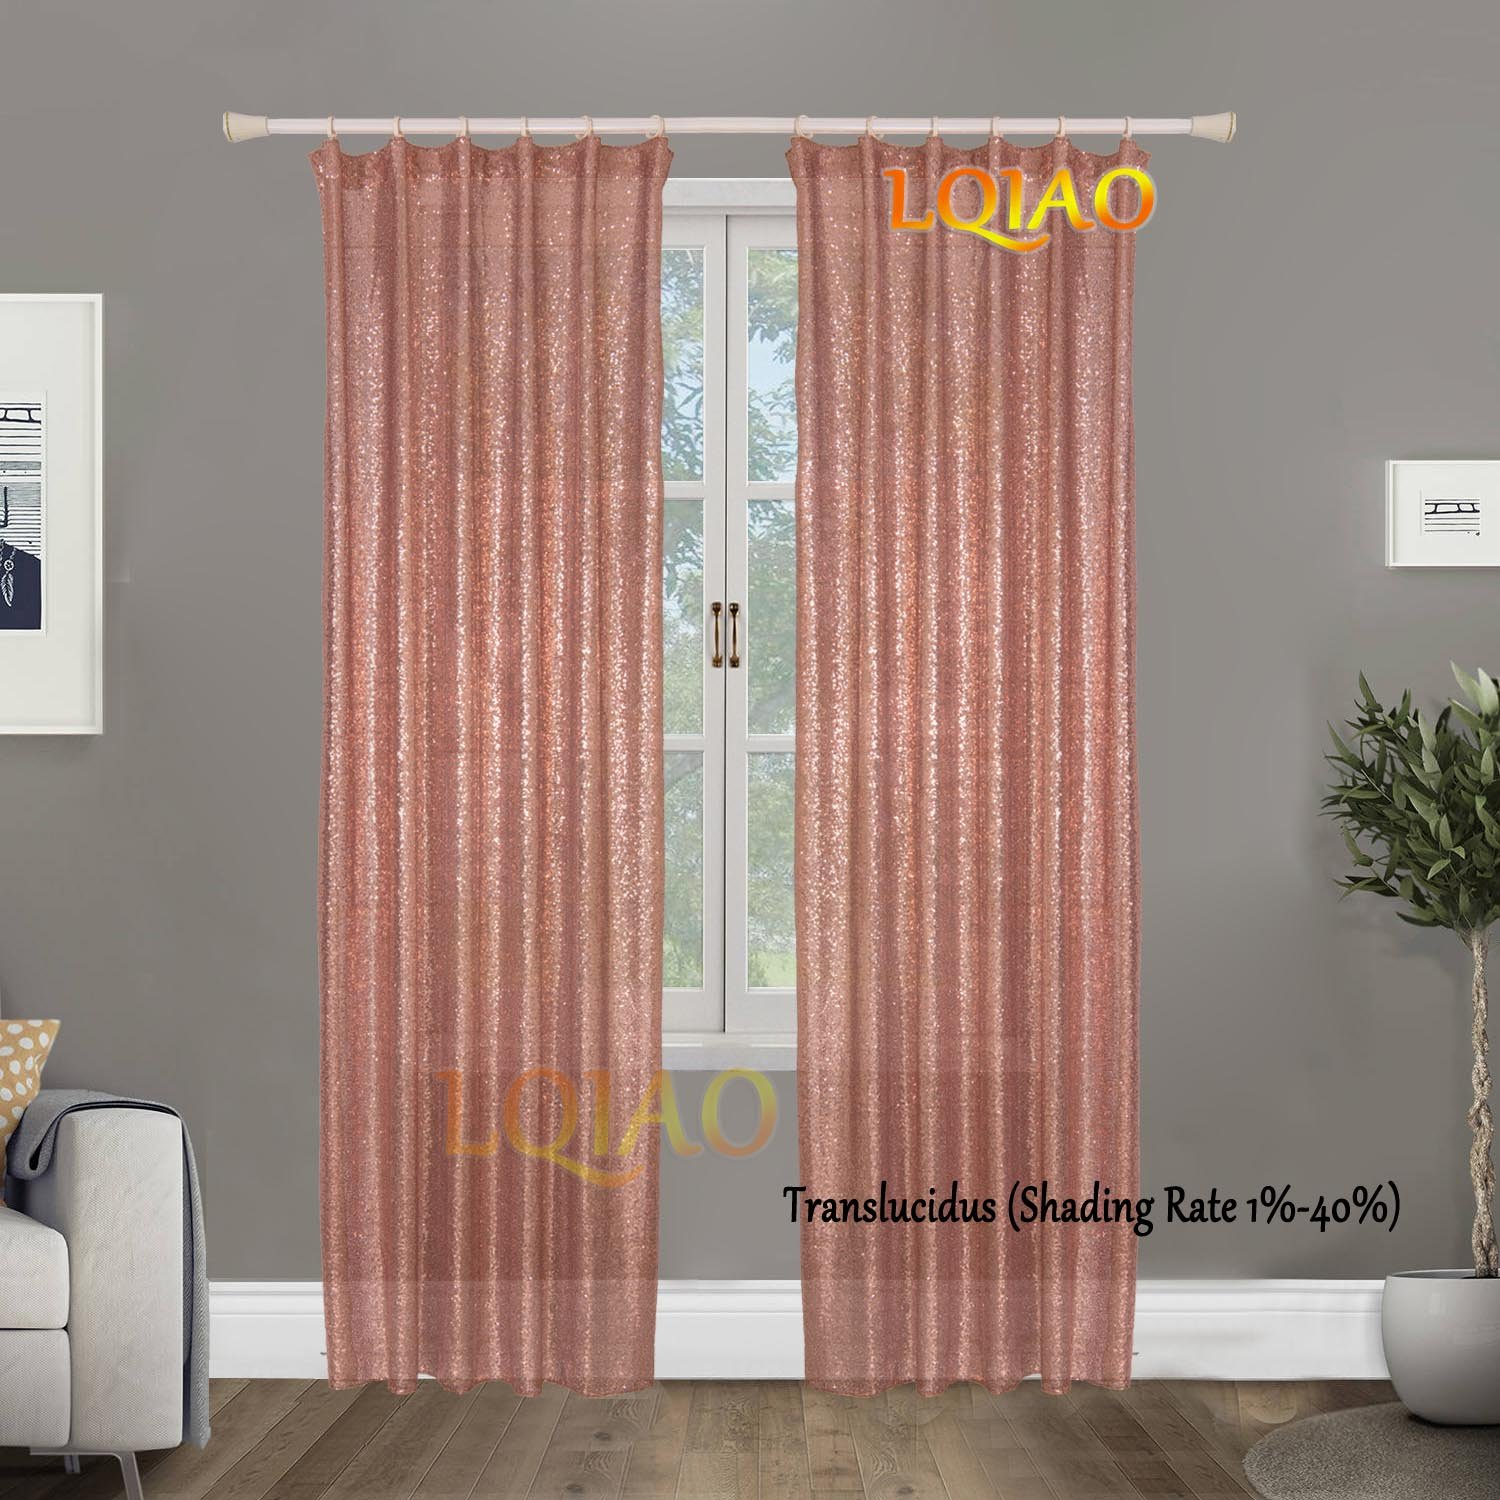 LQIAO Luxurious Metalic Rose Gold Sequin Curtains 240x250cm Sparkly Rose Gold Fabric Window Curtain Panel,little see through, 96x100 inches,More Colors Options Hooks Possible